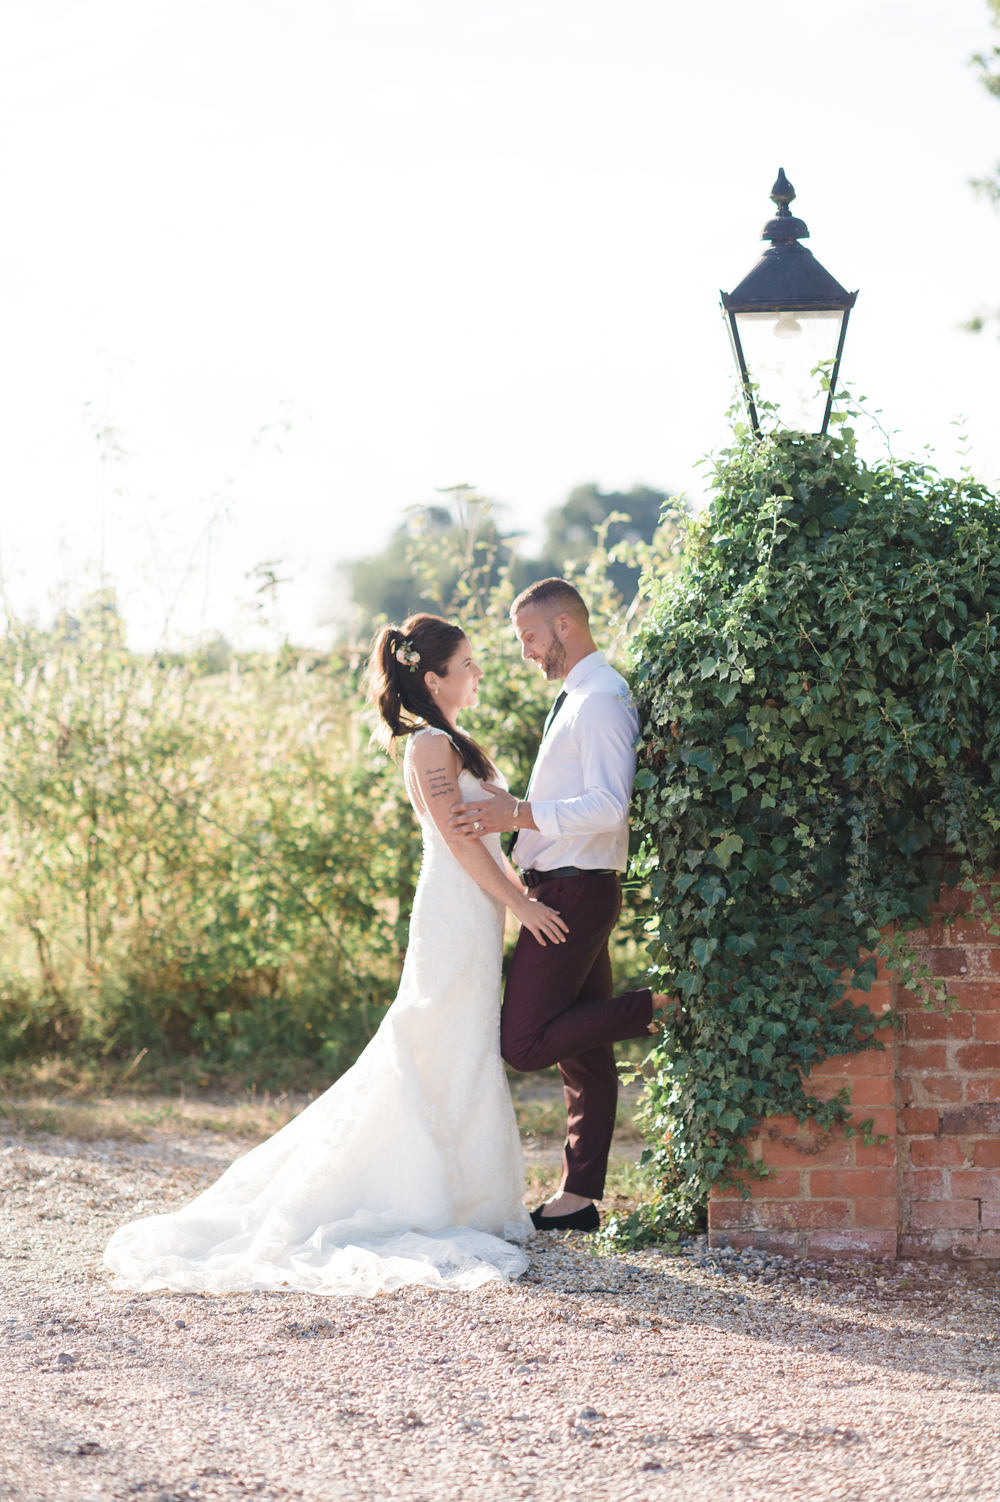 hannah-mcclune-photography-mill-house-hotel-swallowfield-rustic-wedding-burgundy-and-peach-wedding-102